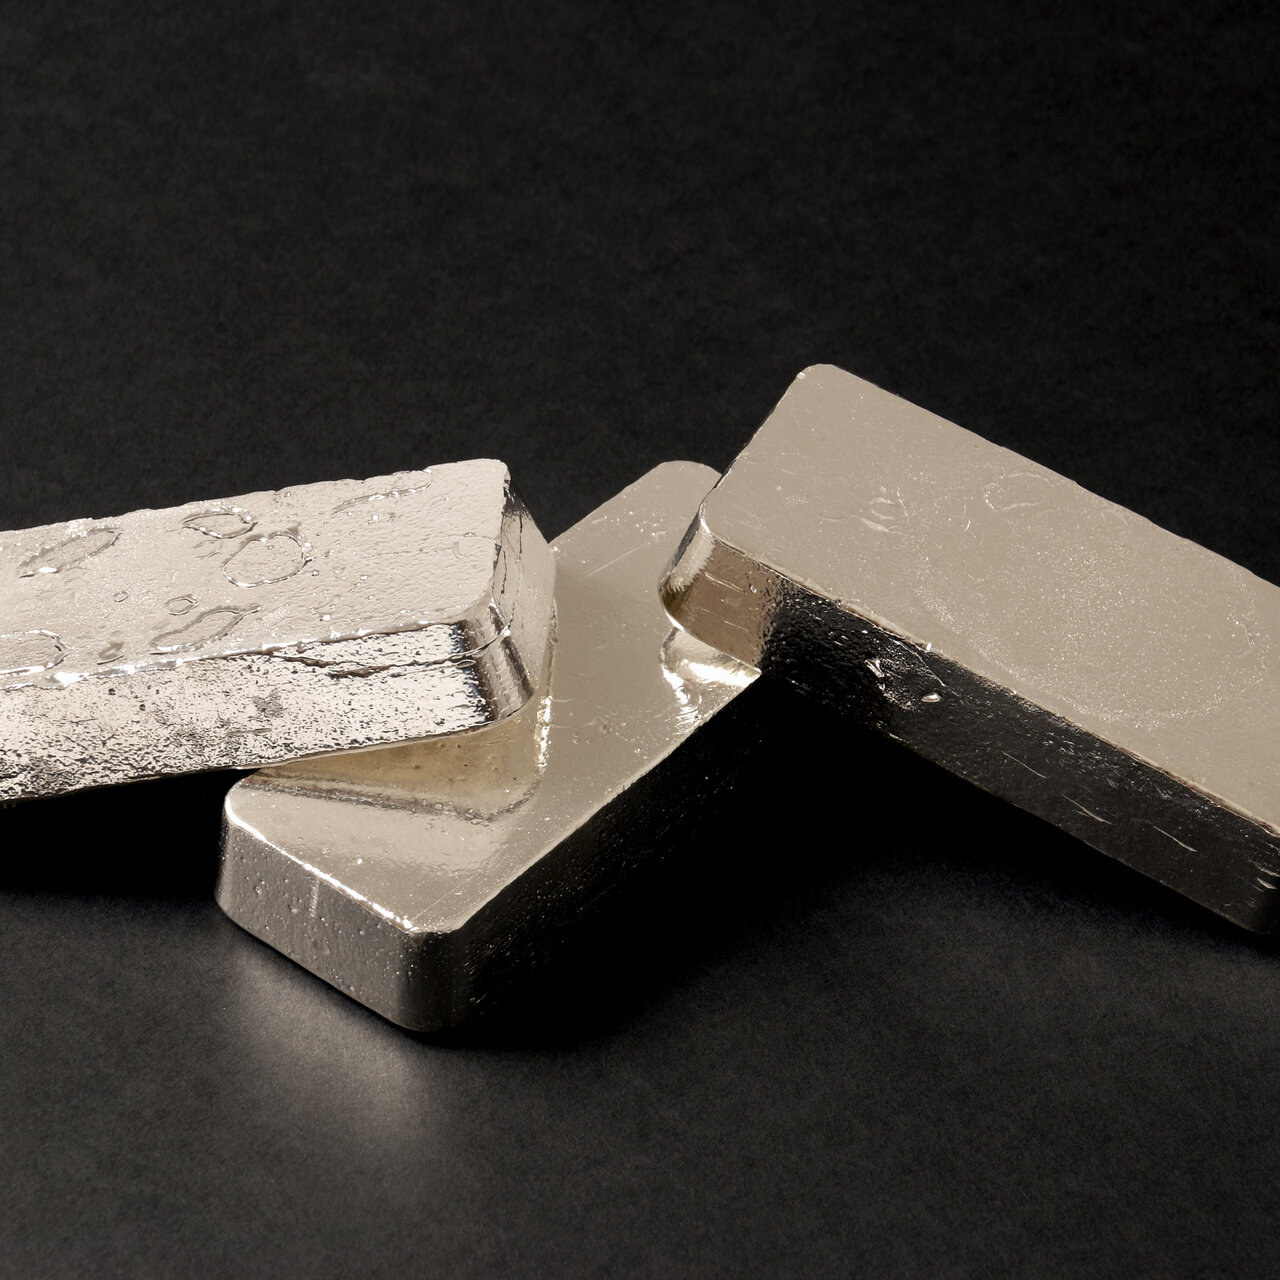 Physical silver bullion